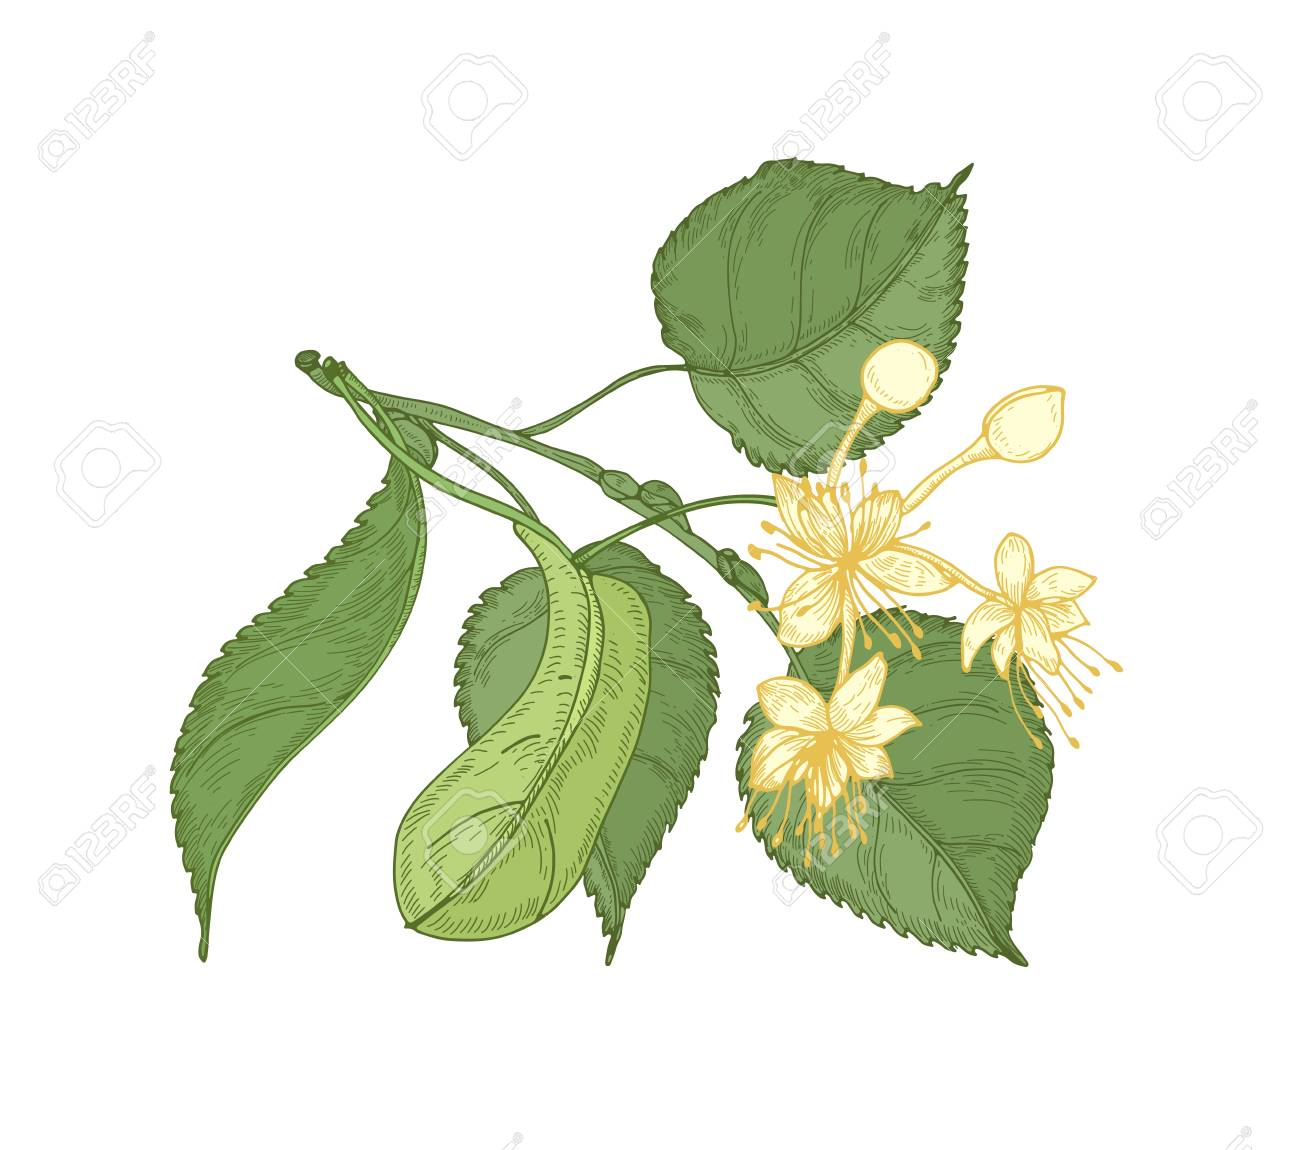 Natural detailed drawing of linden sprig with leaves and beautiful blooming flowers. Gorgeous medicinal plant hand drawn on white background. Decorative design element. Botanical vector illustration - 117296420